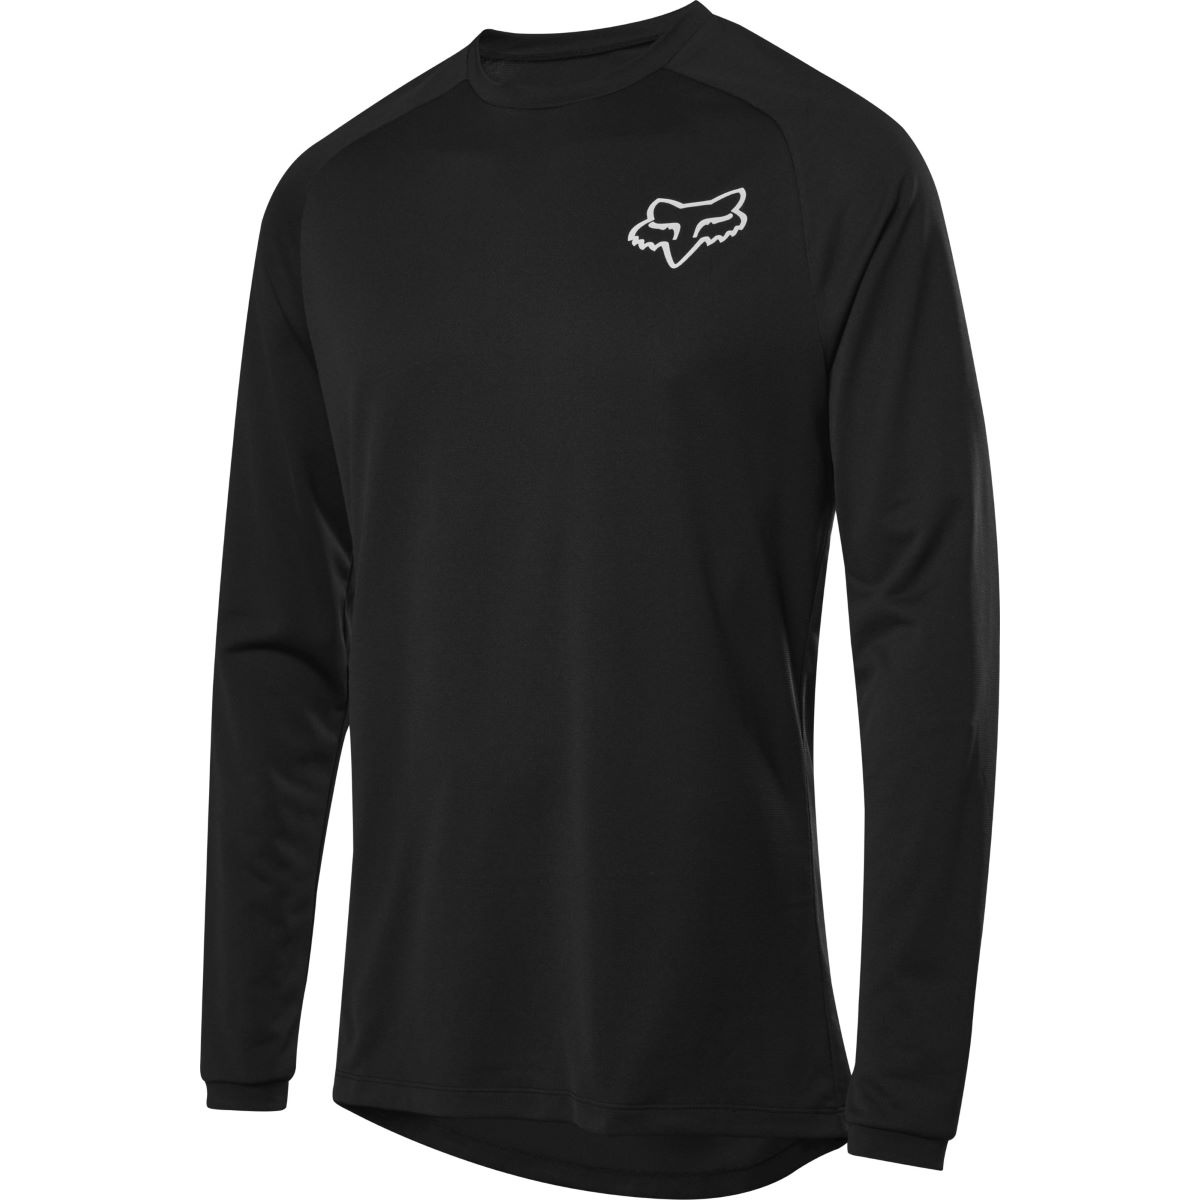 Image of Fox Racing Tecbase Long Sleeve Baselayer Base Layers